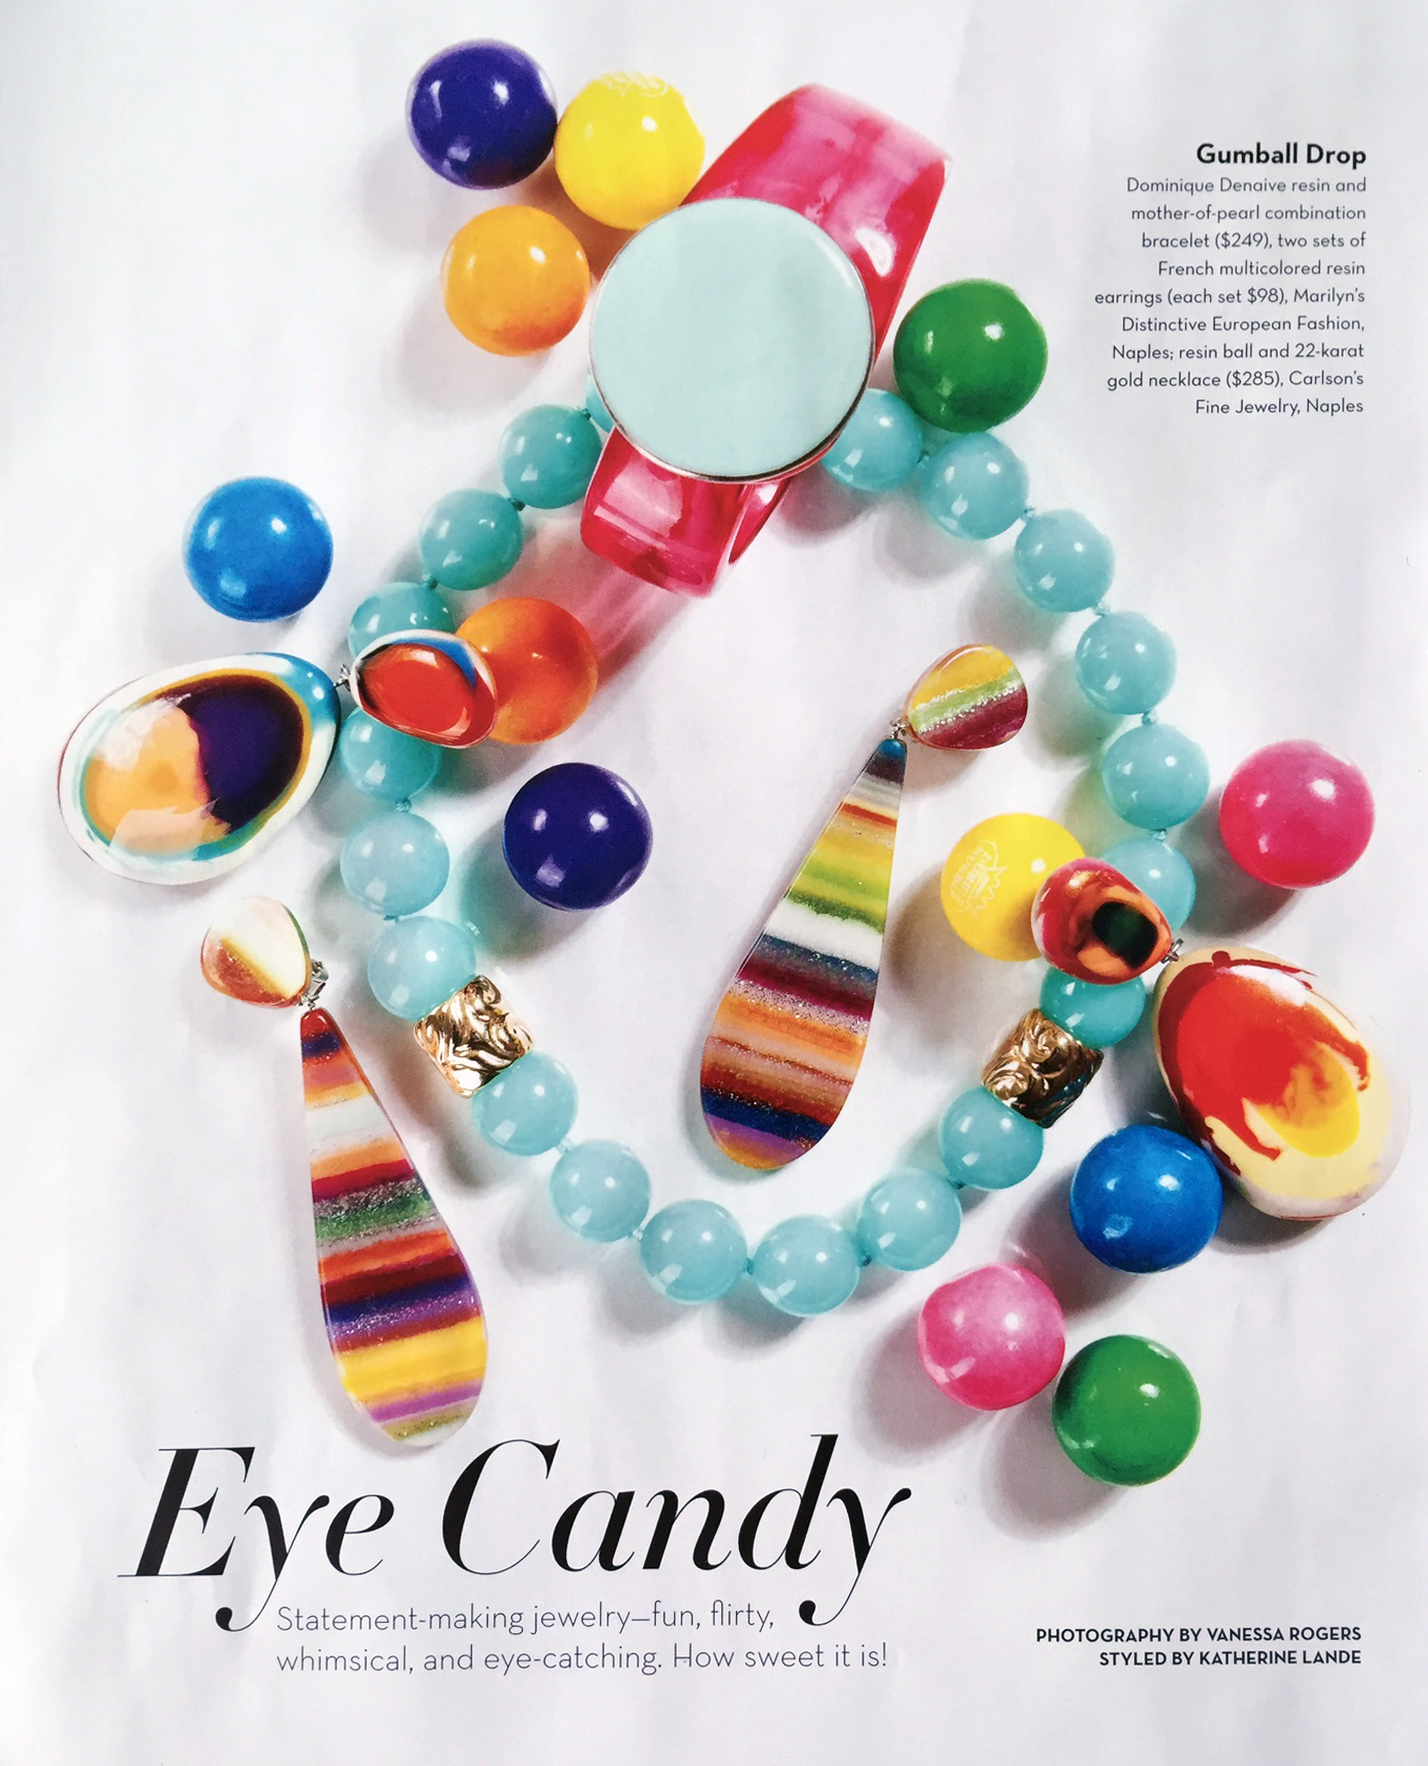 Eye_candy_editorial_jewelry_and_candy_photographed_by_Vanessa_rogers